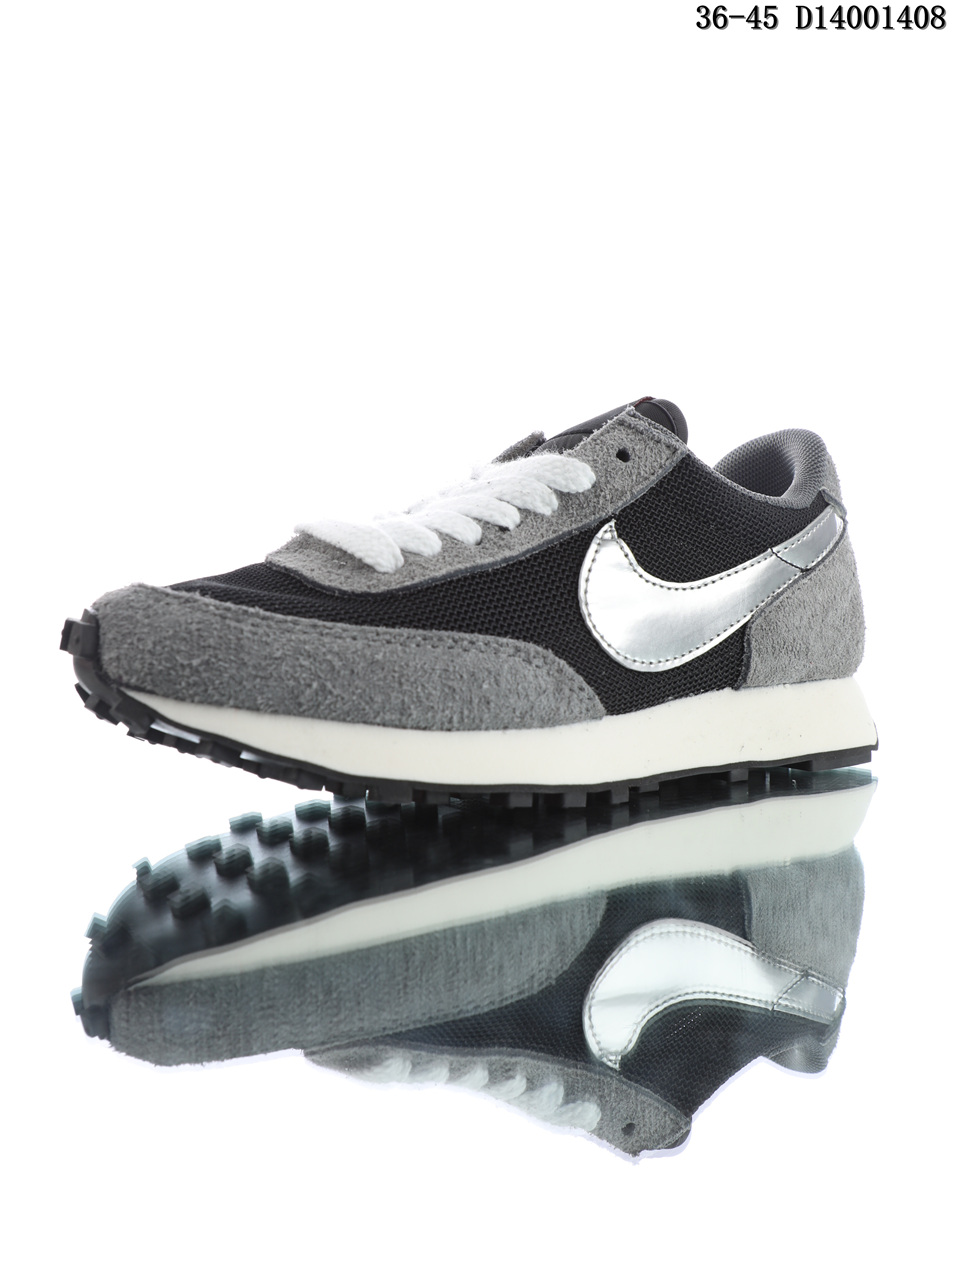 Nike Air Tailwind 79 Betrue Running Shoes Gray Black side